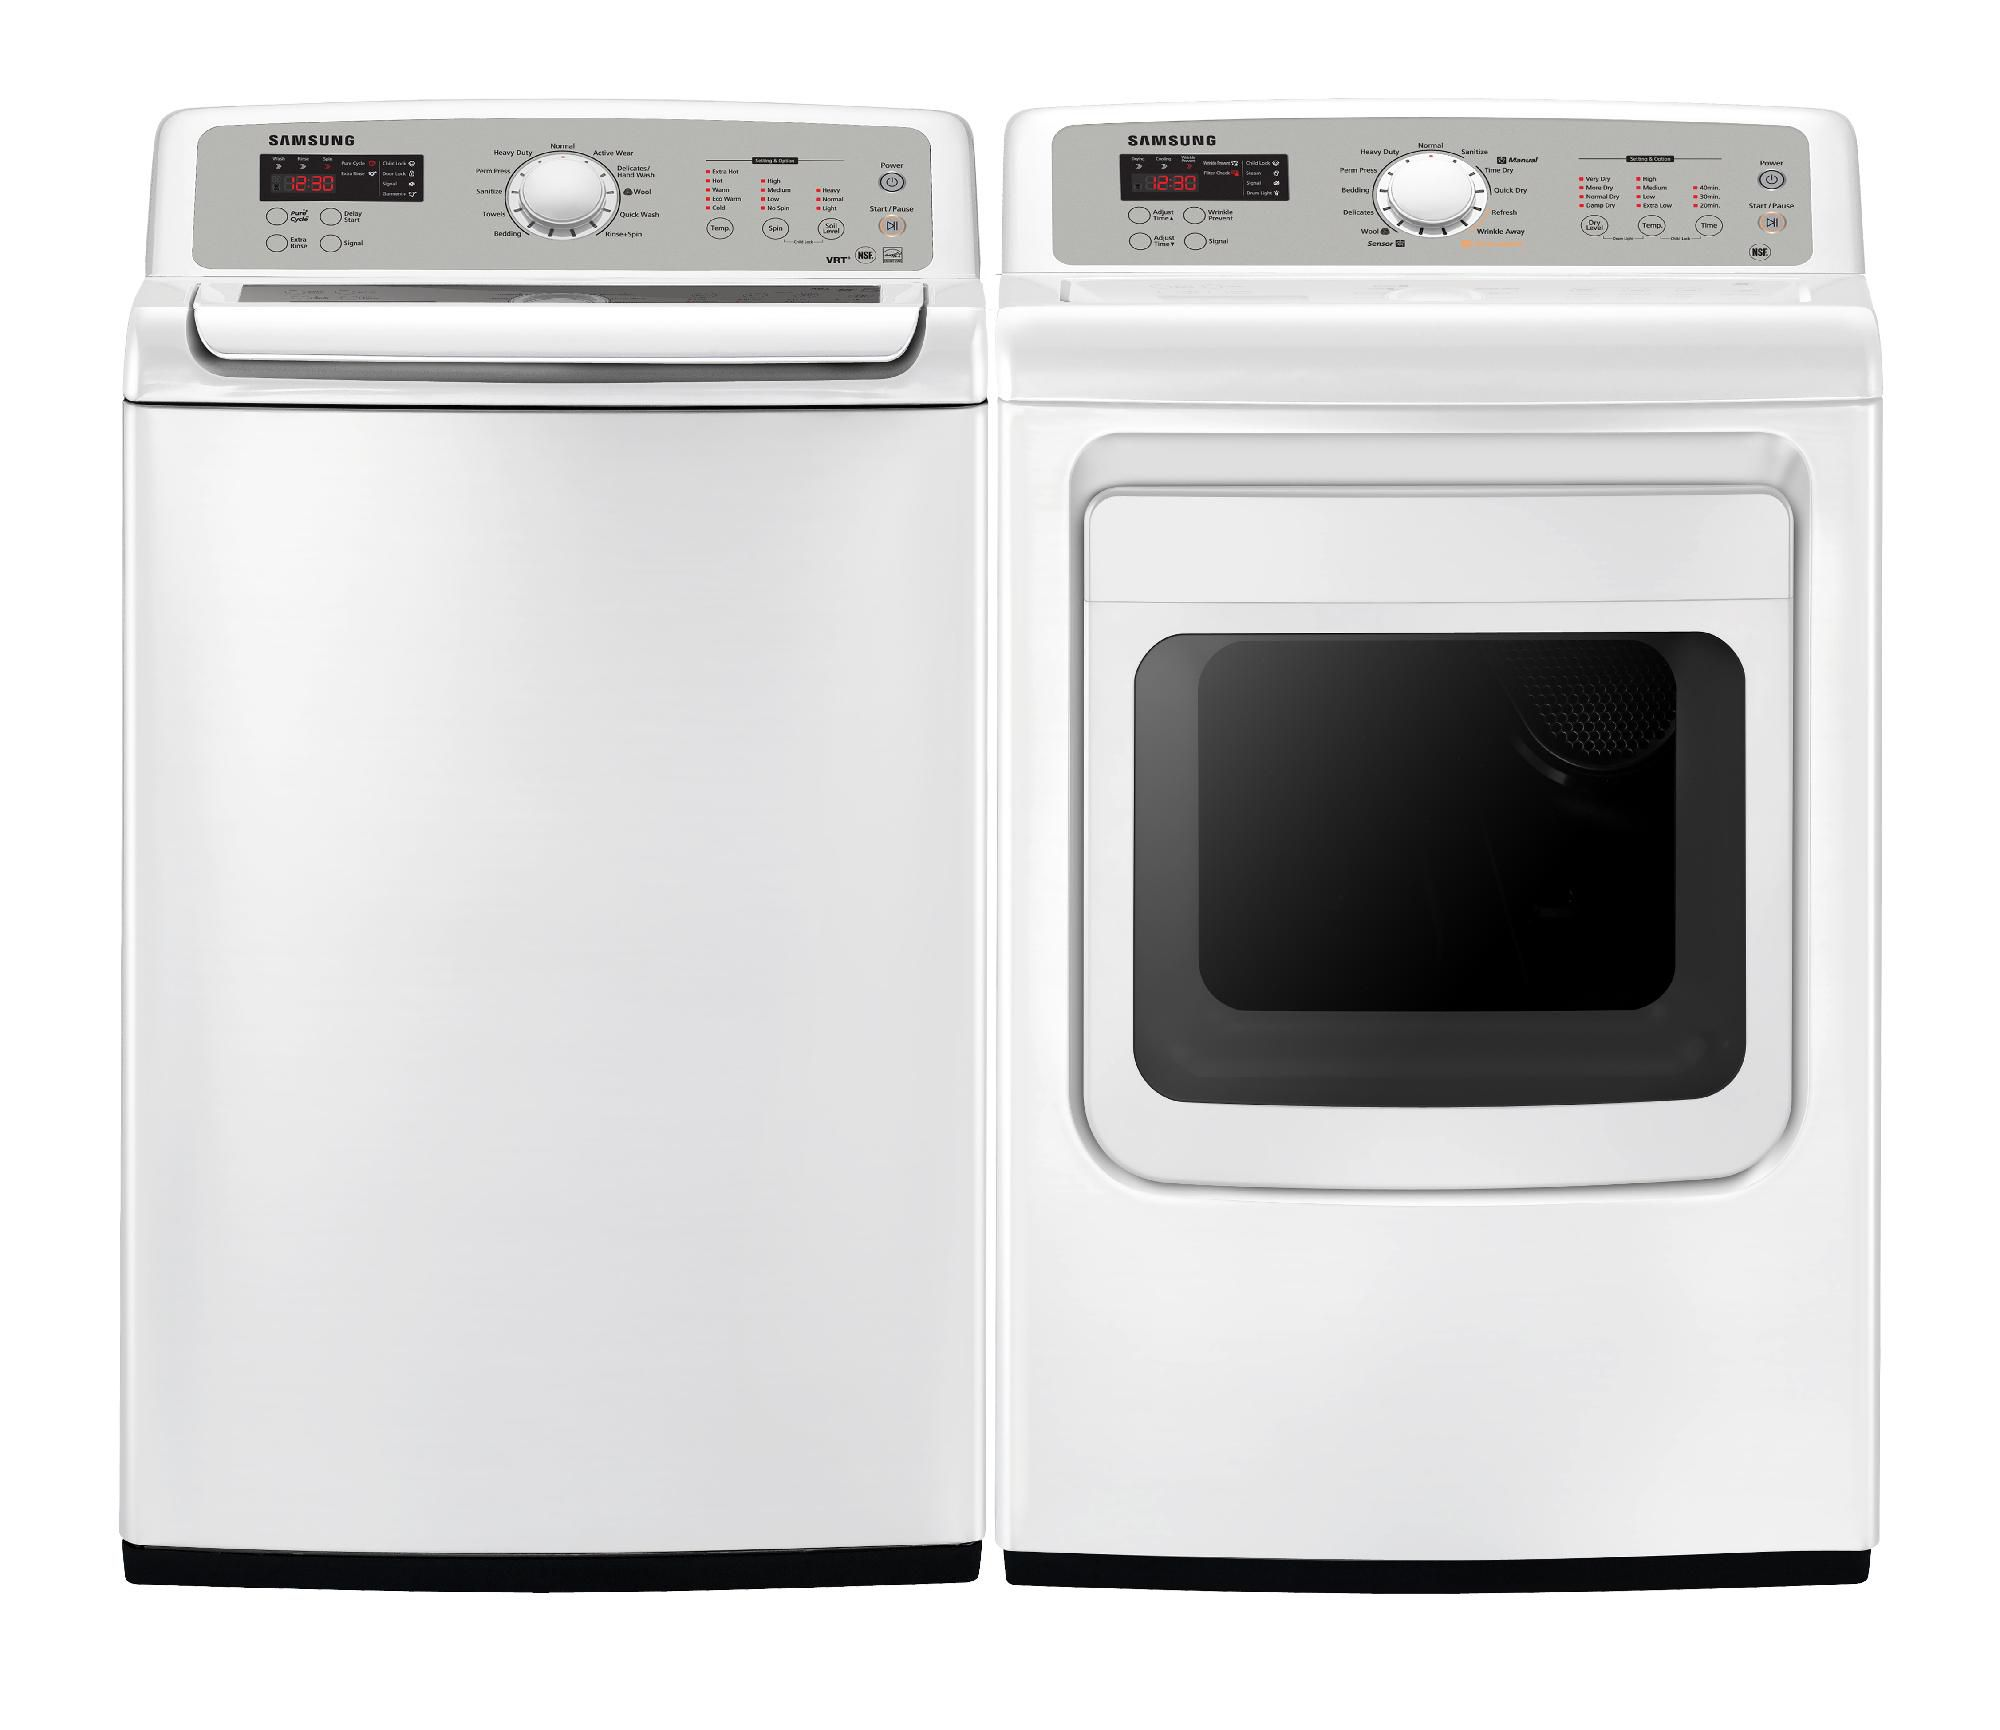 Samsung 7.4 cu. ft. Electric  Steam Dryer - White